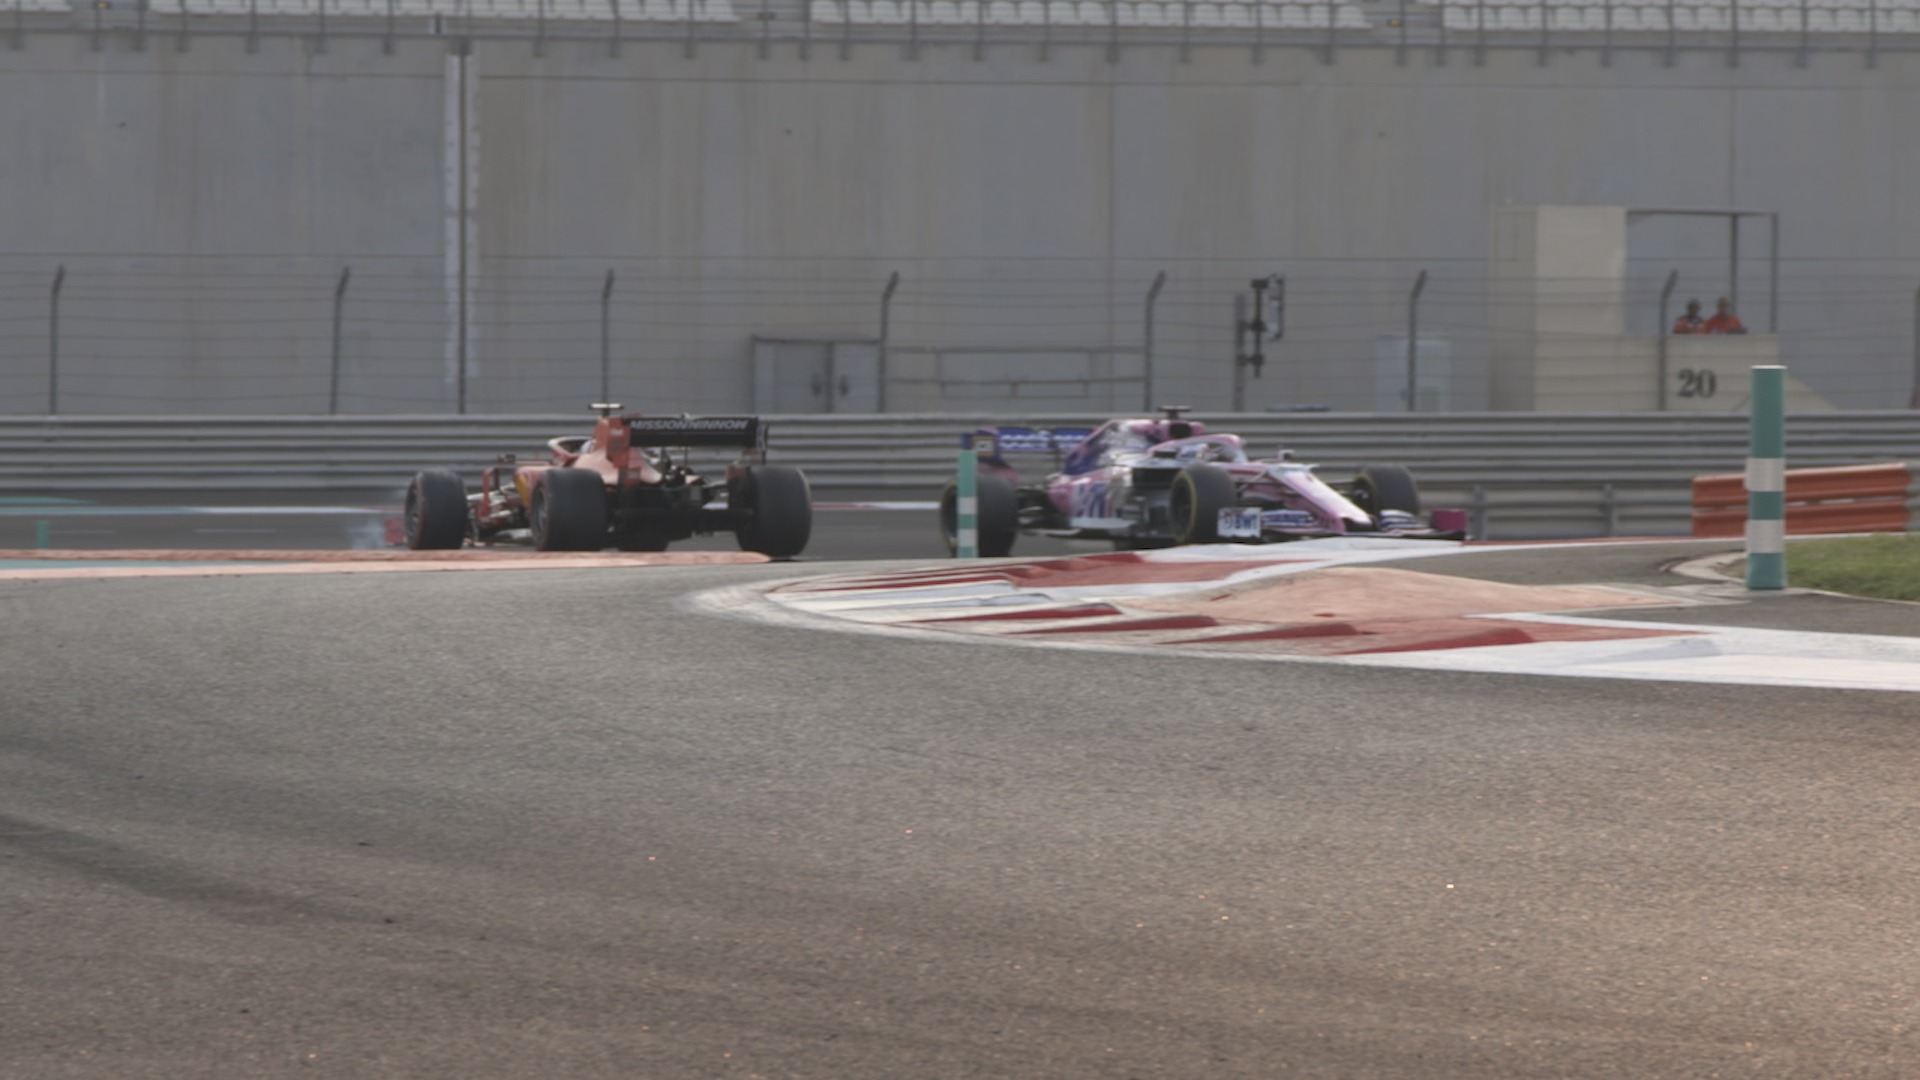 Perez taps Vettel into a spin at Abu Dhabi test